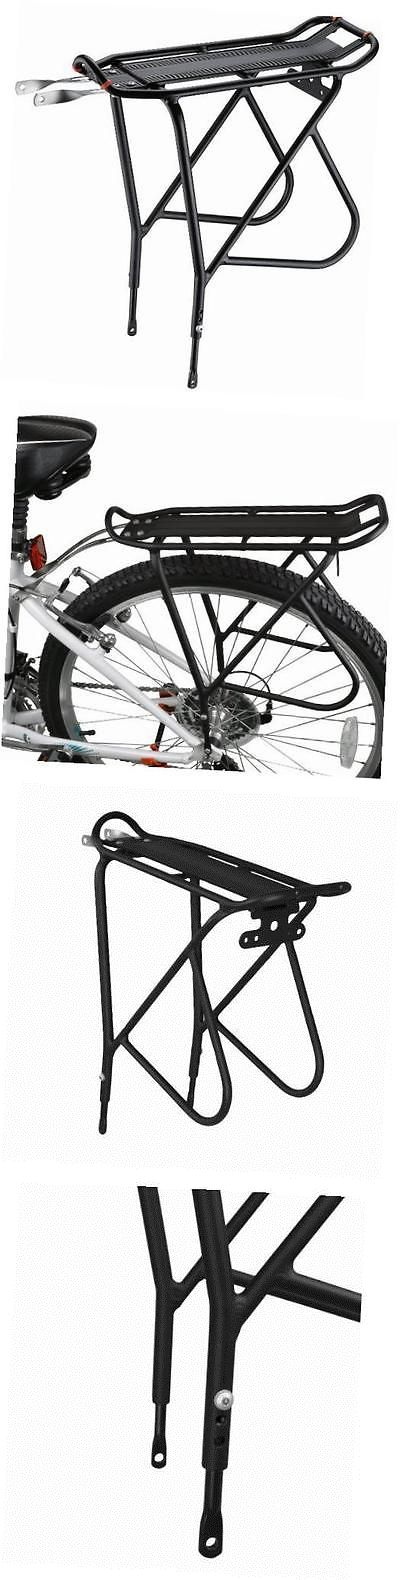 Carrier and Pannier Racks 177836: Bike Carrier Rack, For Heavier Top And Side Storage, For 26 -29 Frames -> BUY IT NOW ONLY: $45.24 on eBay!